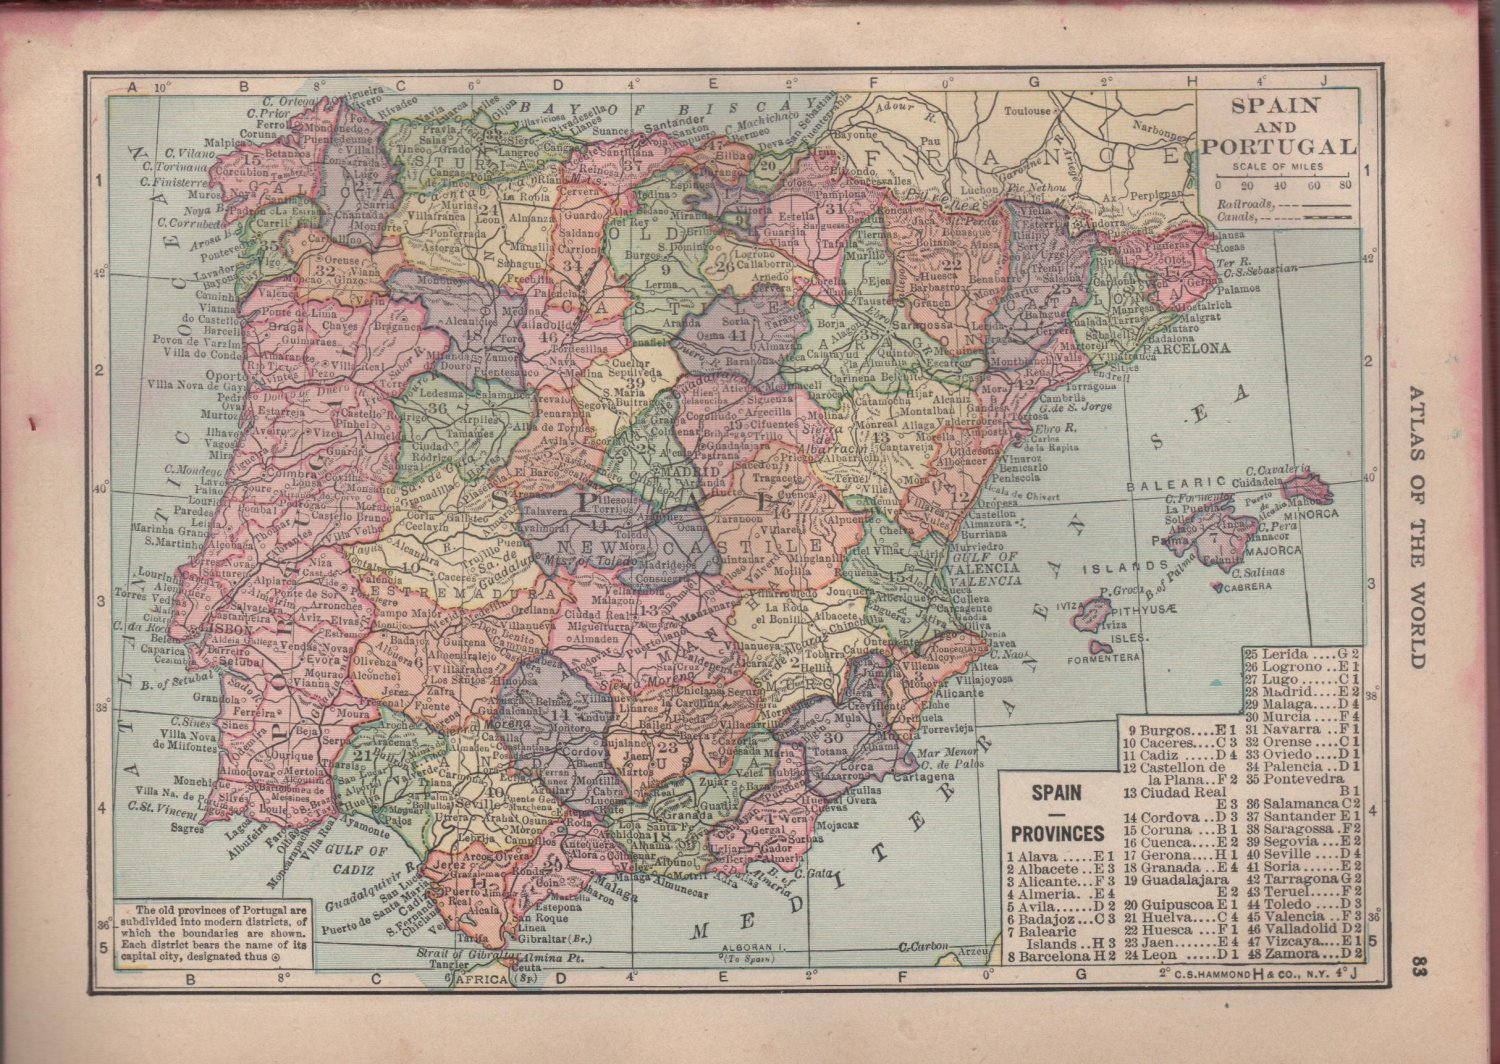 Map of Spain and Portugal, Full Color, C.S. Hammond & Co. Atlas c.1910